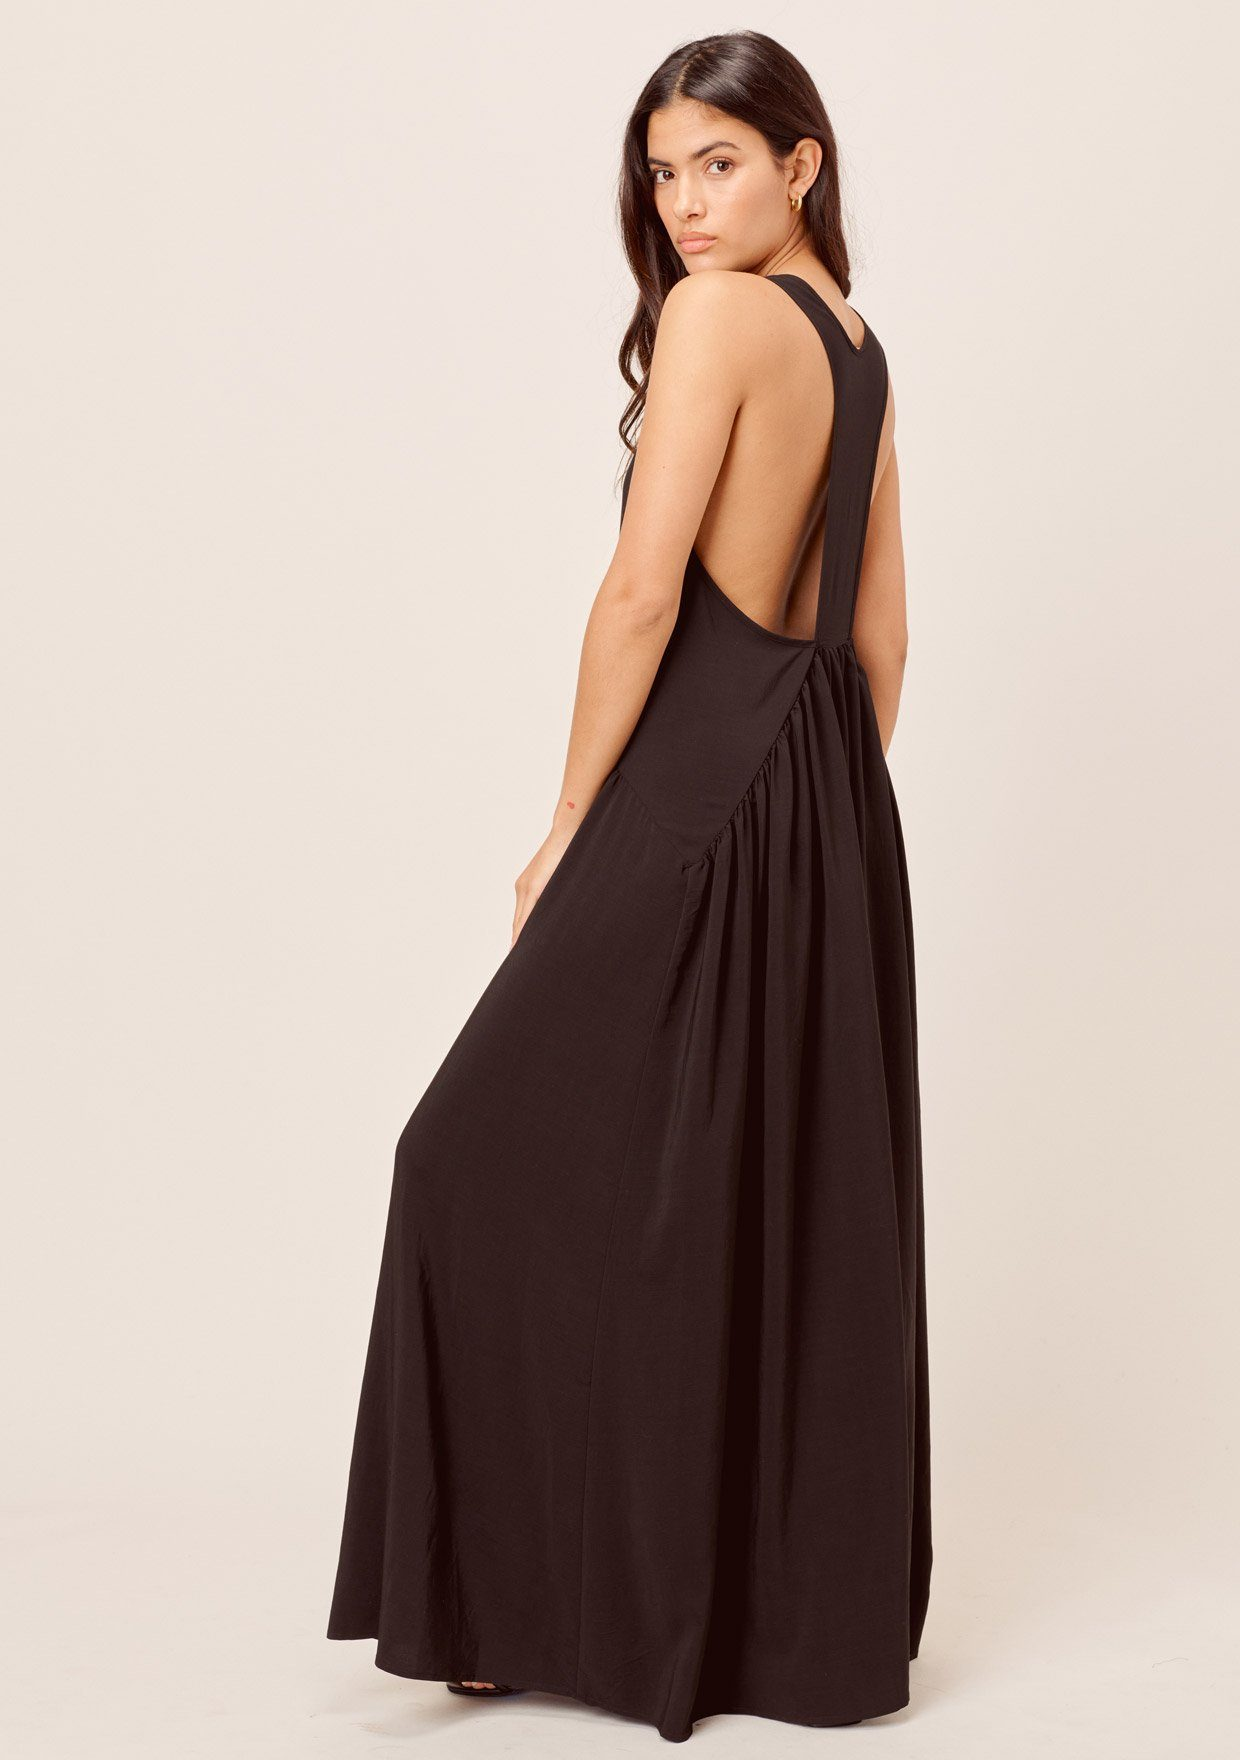 [Color: Black] Lovestitch black gorgeous, tiered maxi dress with flowy, flattering silhouette and sexy racerback detail.